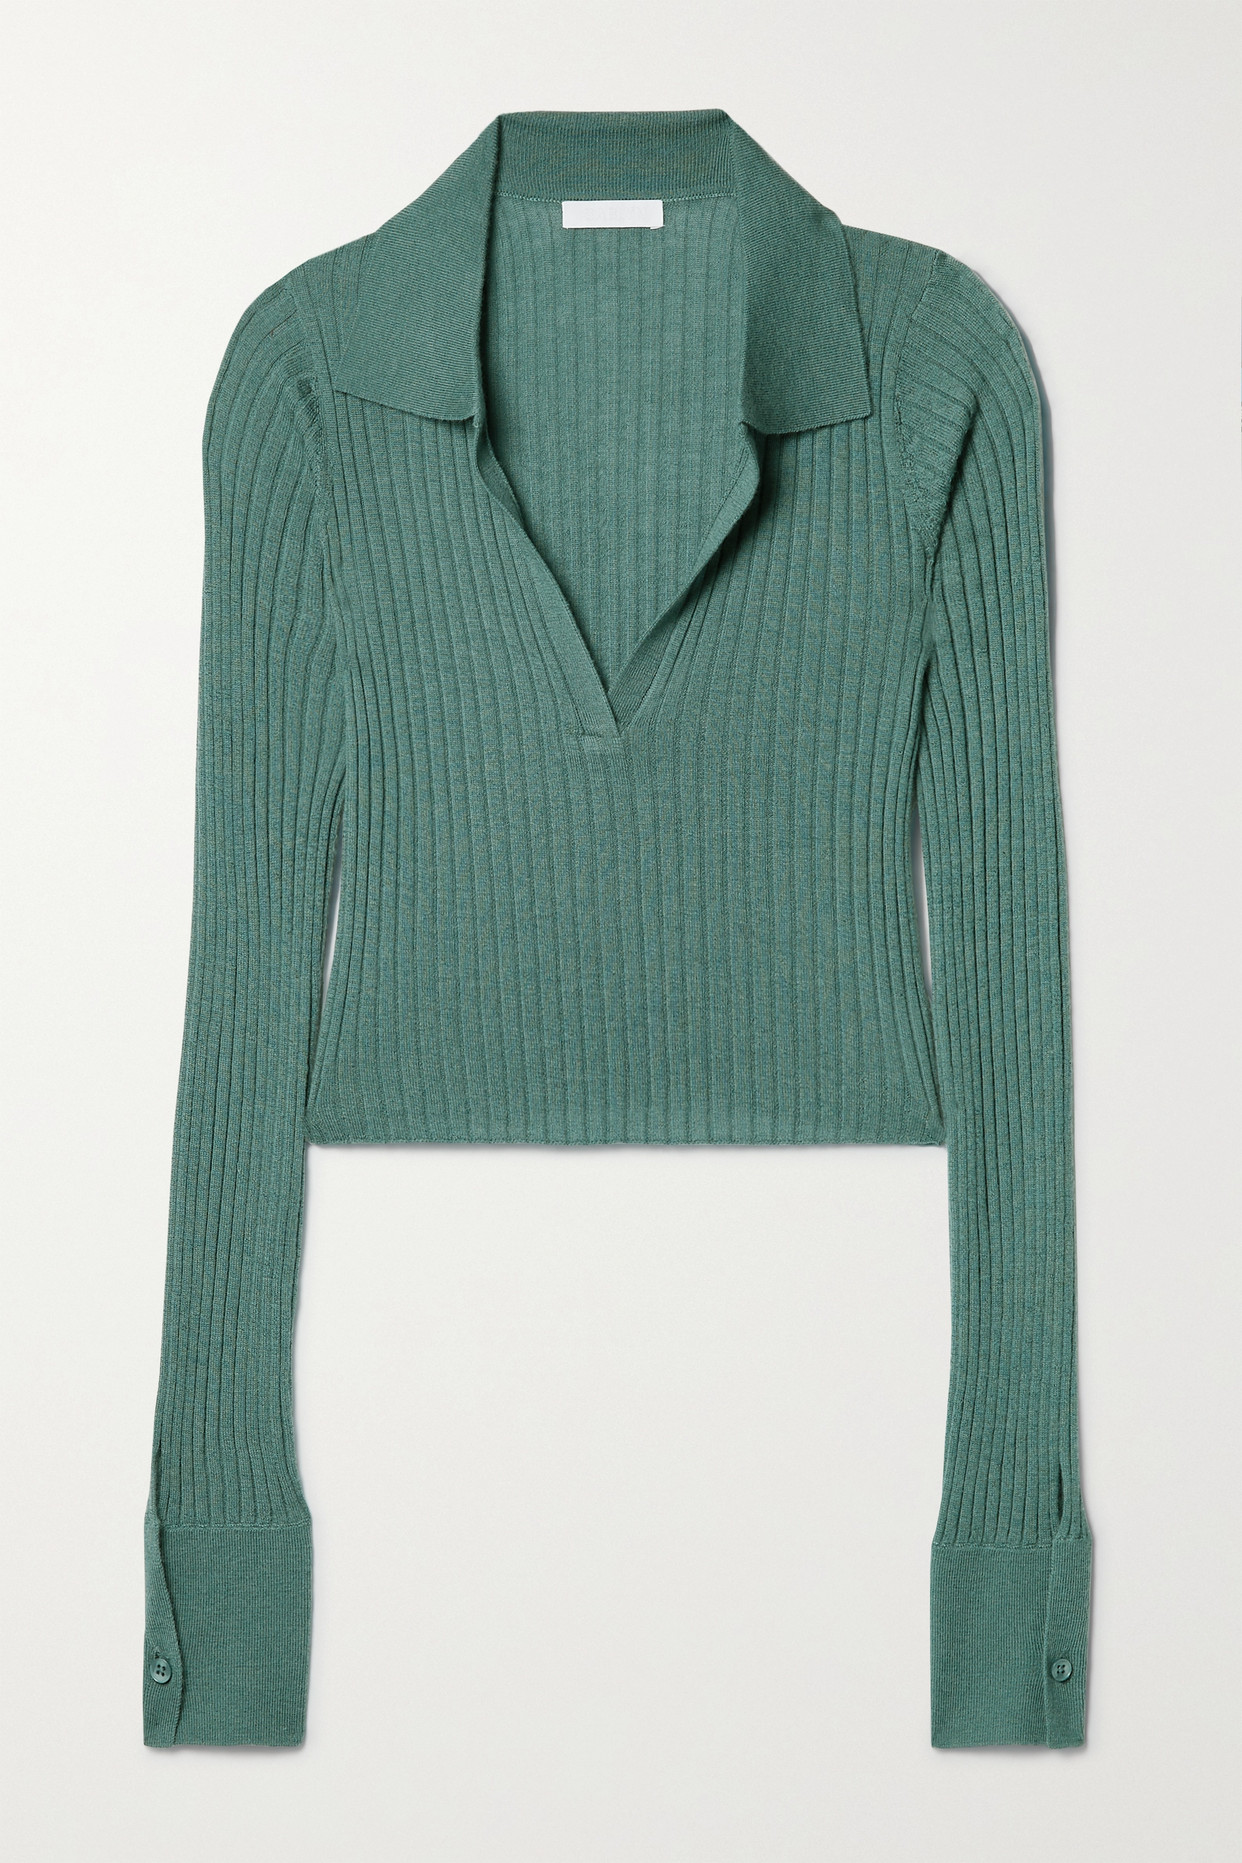 Sablyn Irene Cropped Ribbed Cashmere Top In Green